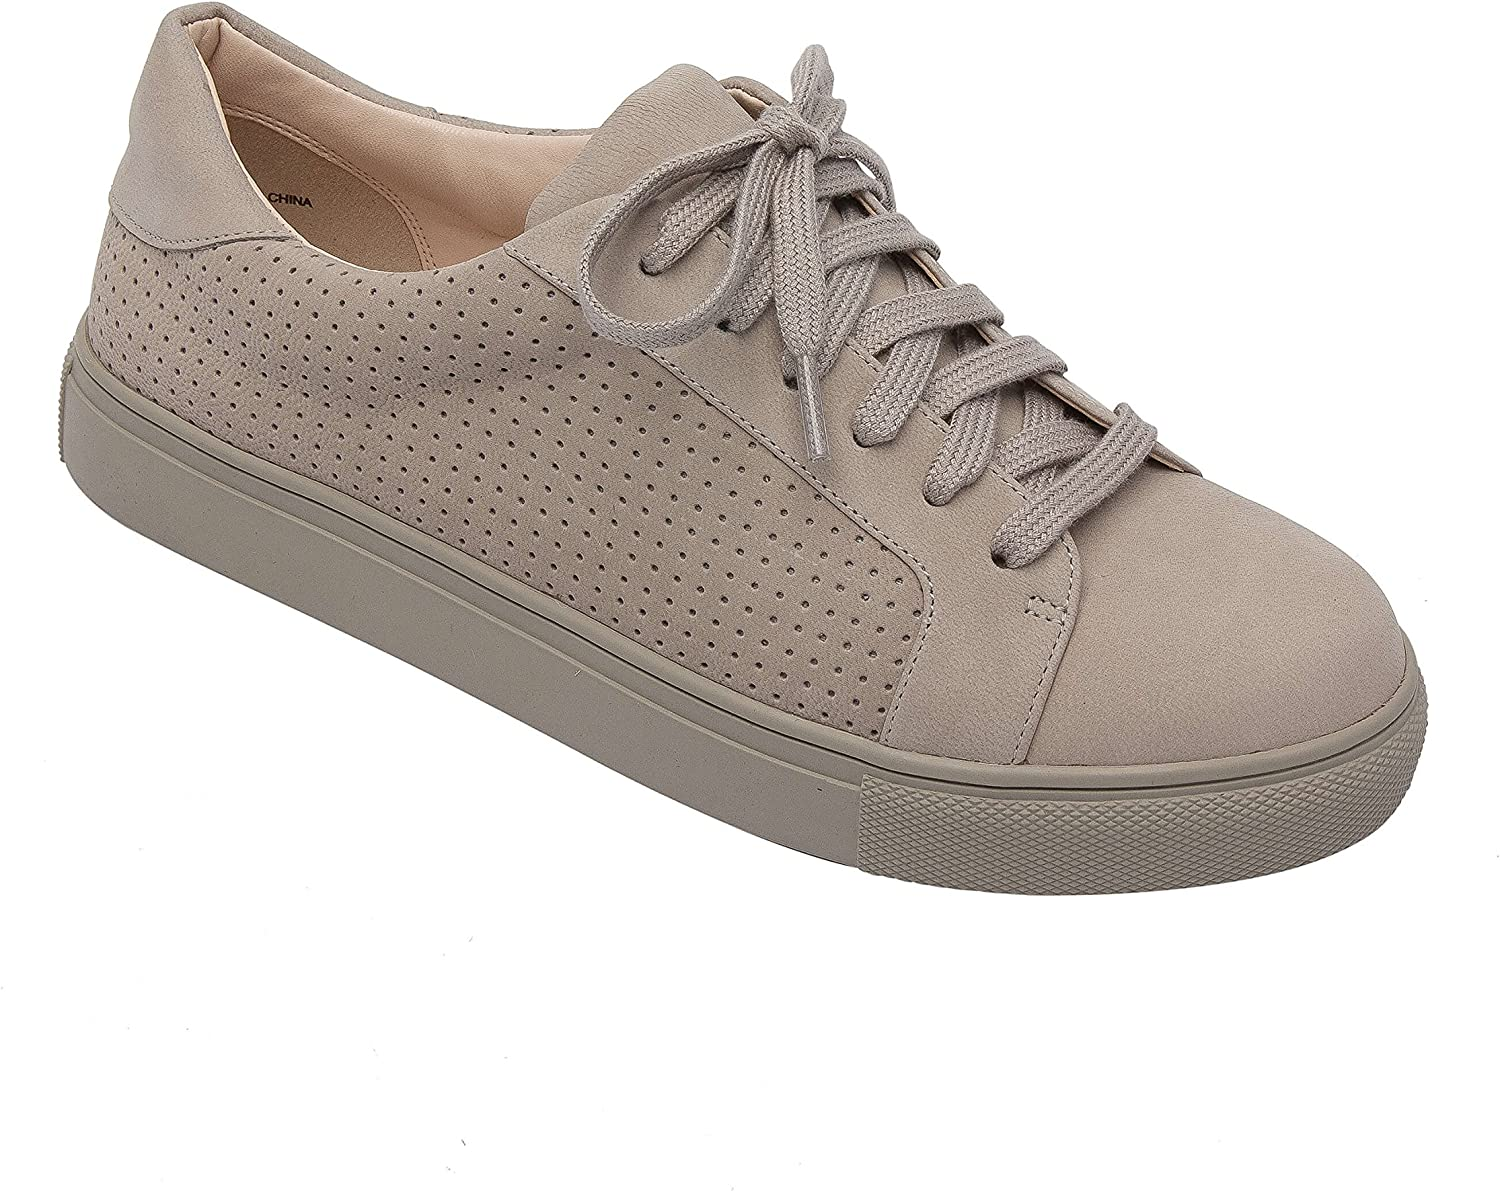 Pic & Pay OLLYN   Women's Lace-Up Perforated Leather or Suede Comfortable Fashion Sneaker Grey Nubuck 9.5M